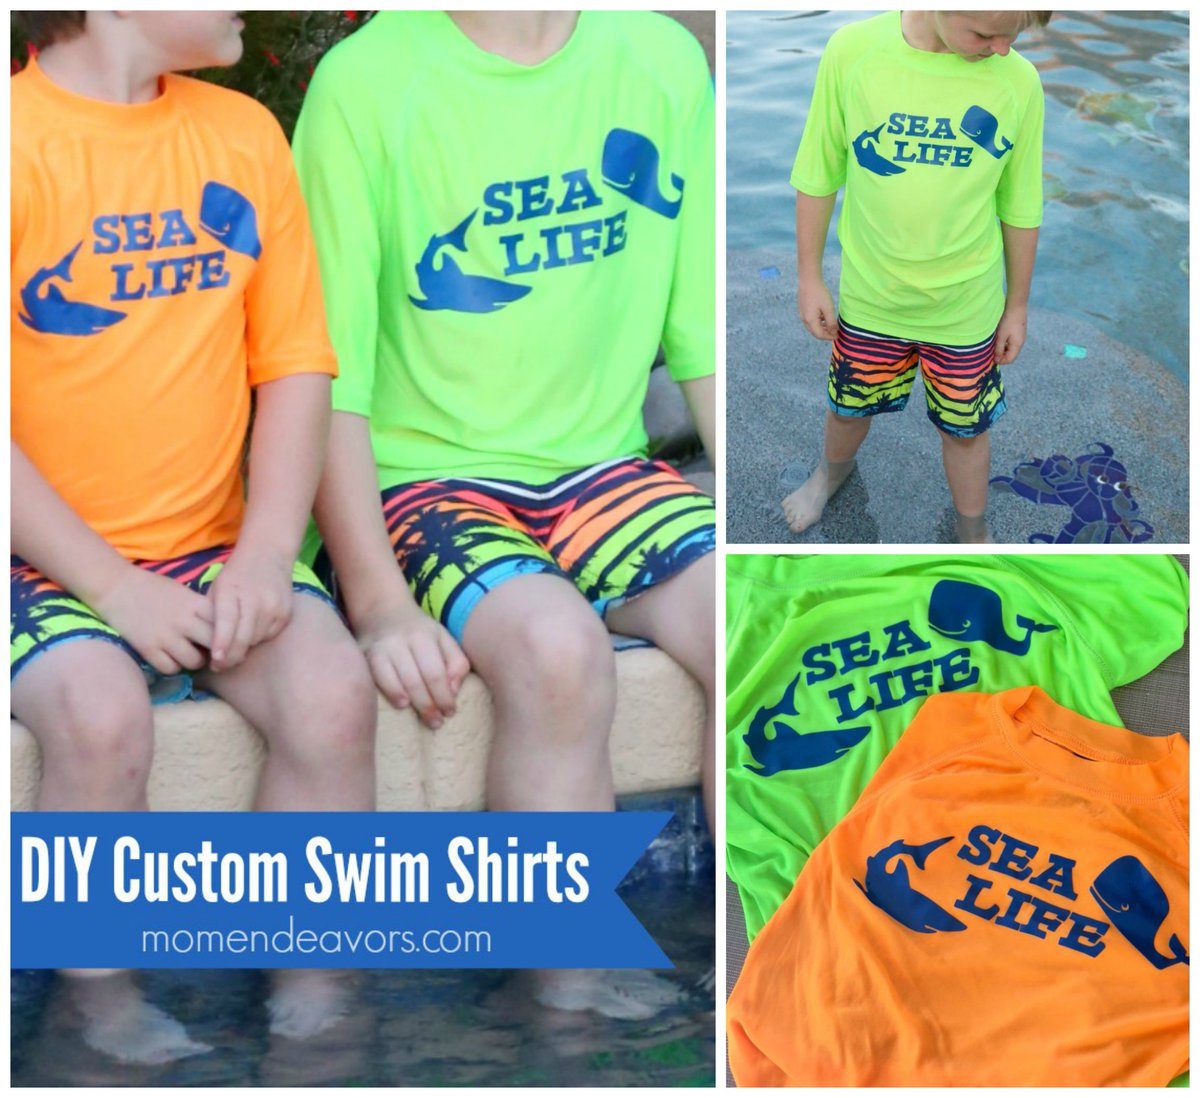 2ea36a3f41 Hop over to the blog to get the free cut file --   http   www.momendeavors.com 2018 03 diy-custom-swim-shirts-with-cricut- sportflex-iron-on.html …